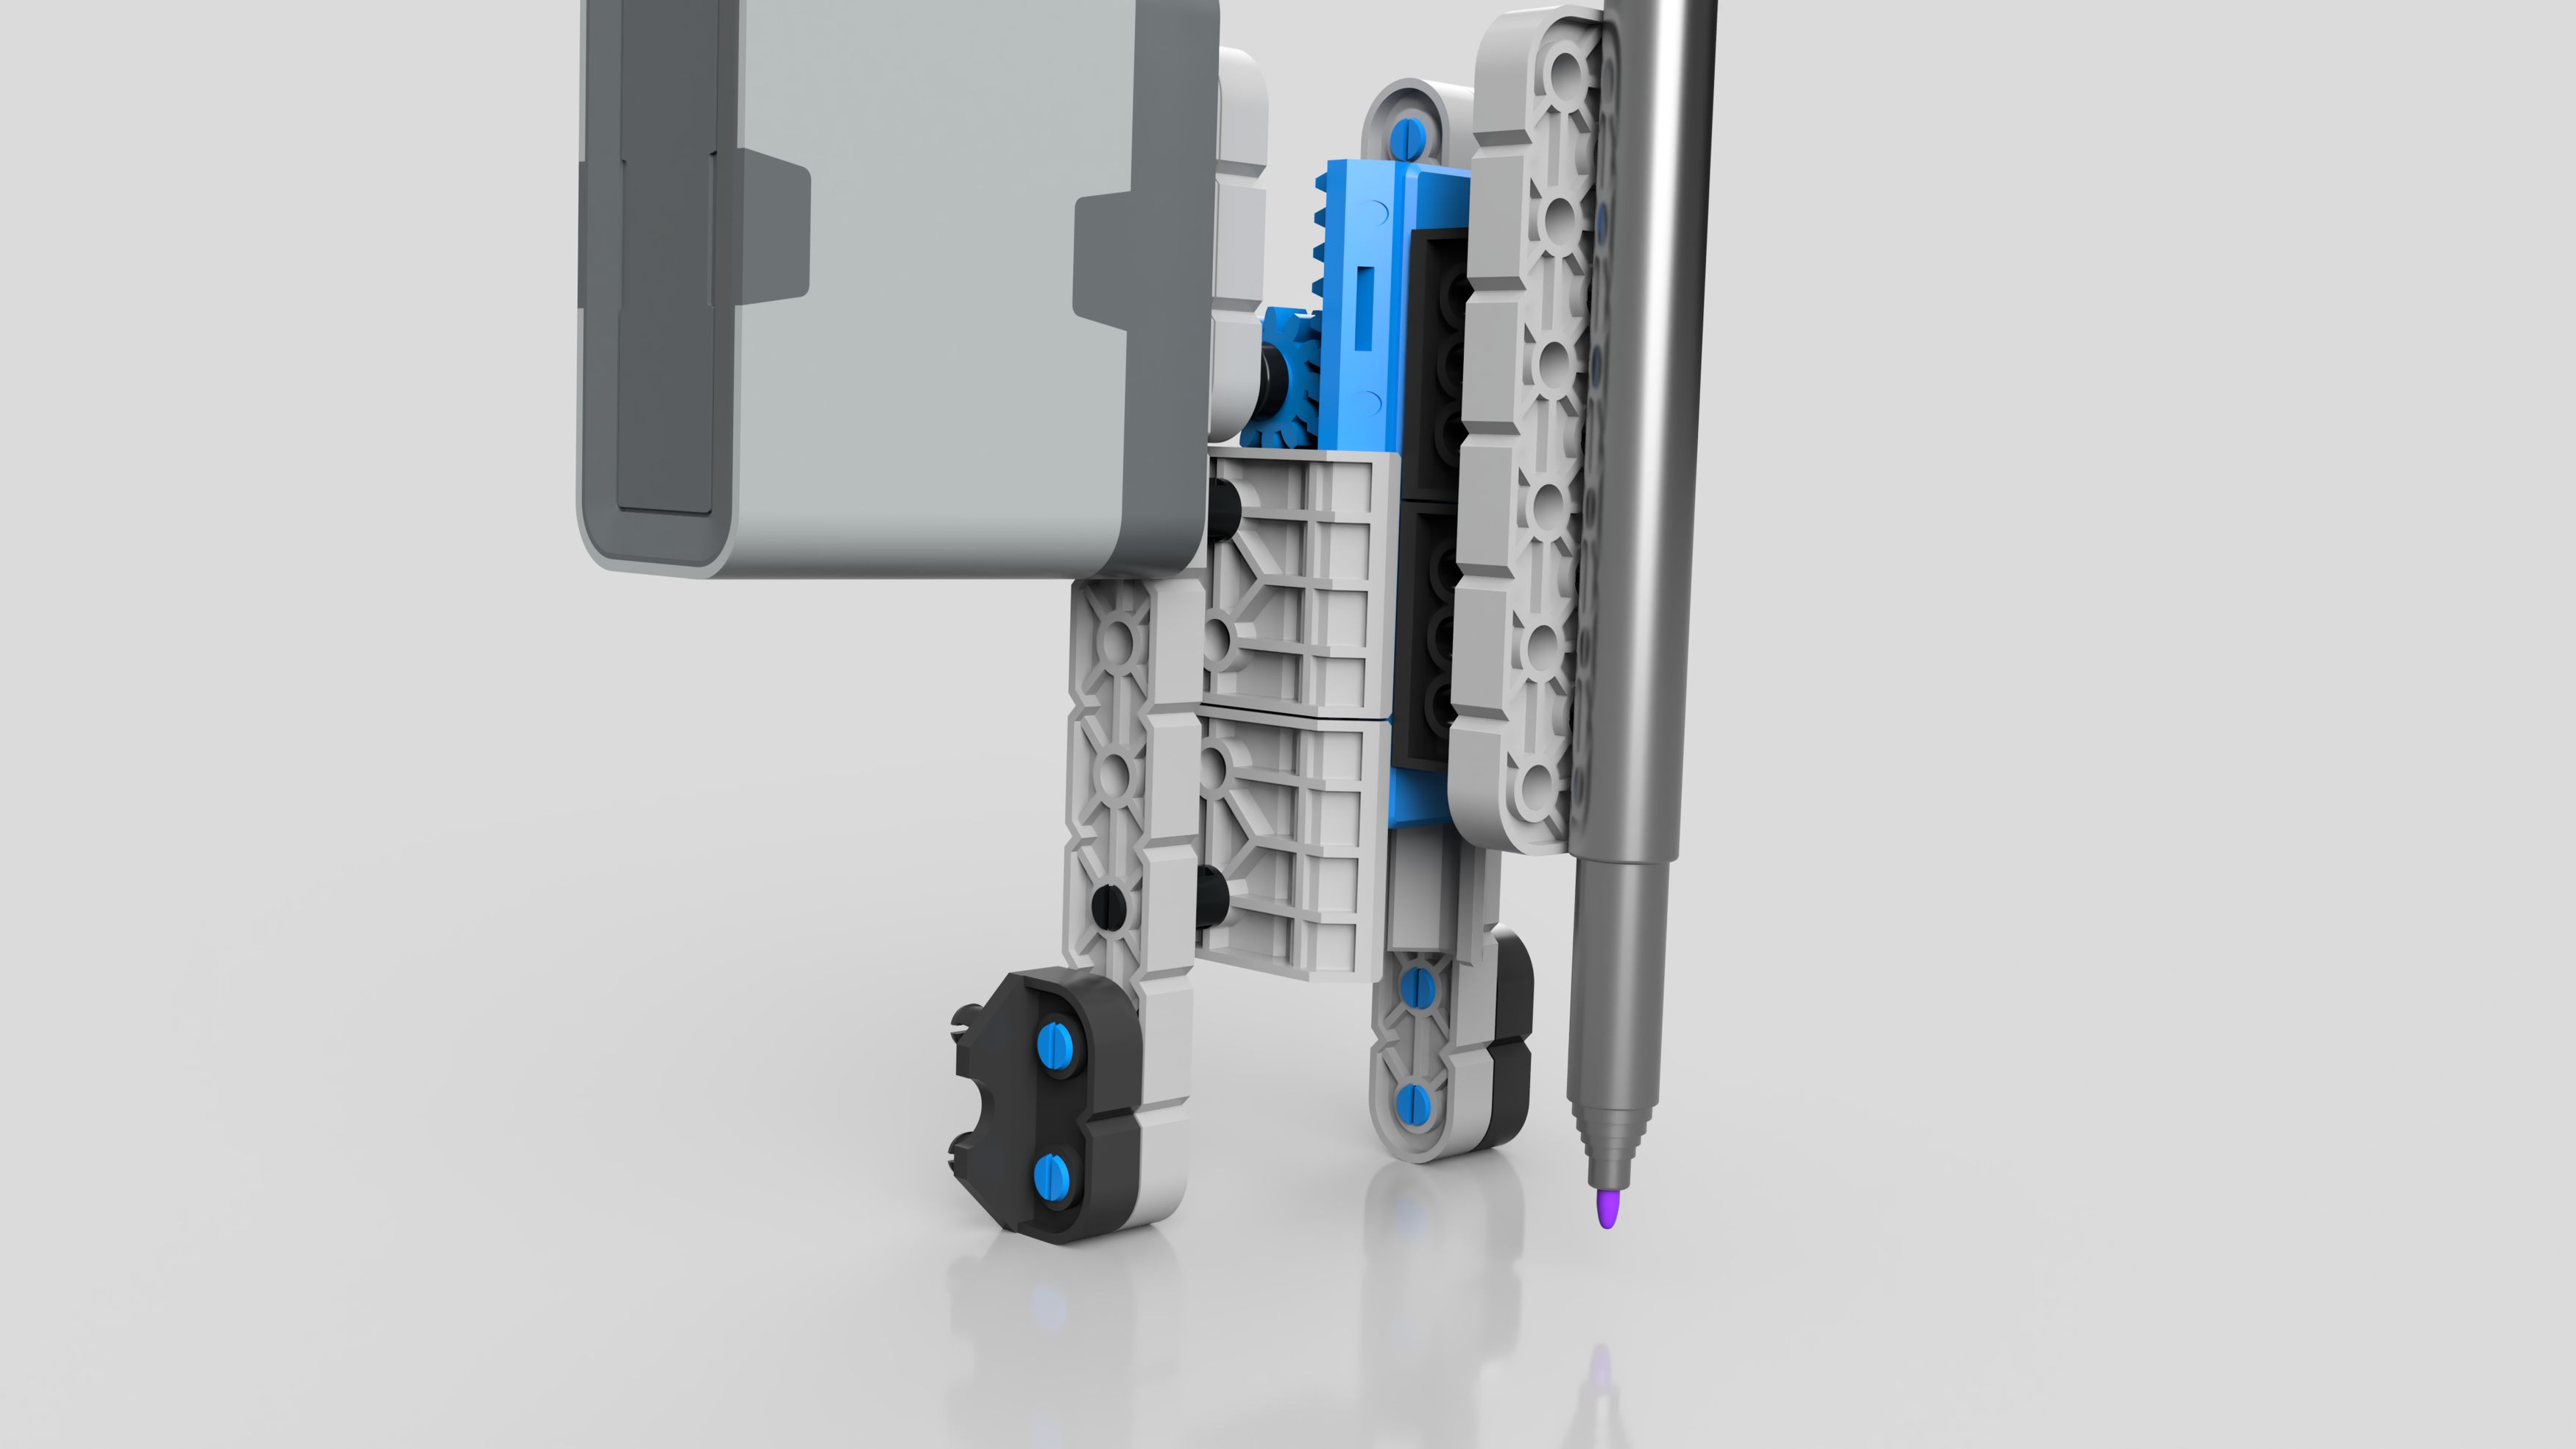 Robotic-pen-vex-iq---vexcode-vr-2020-may-21-04-41-57pm-000-customizedview15002734029-png-3500-3500